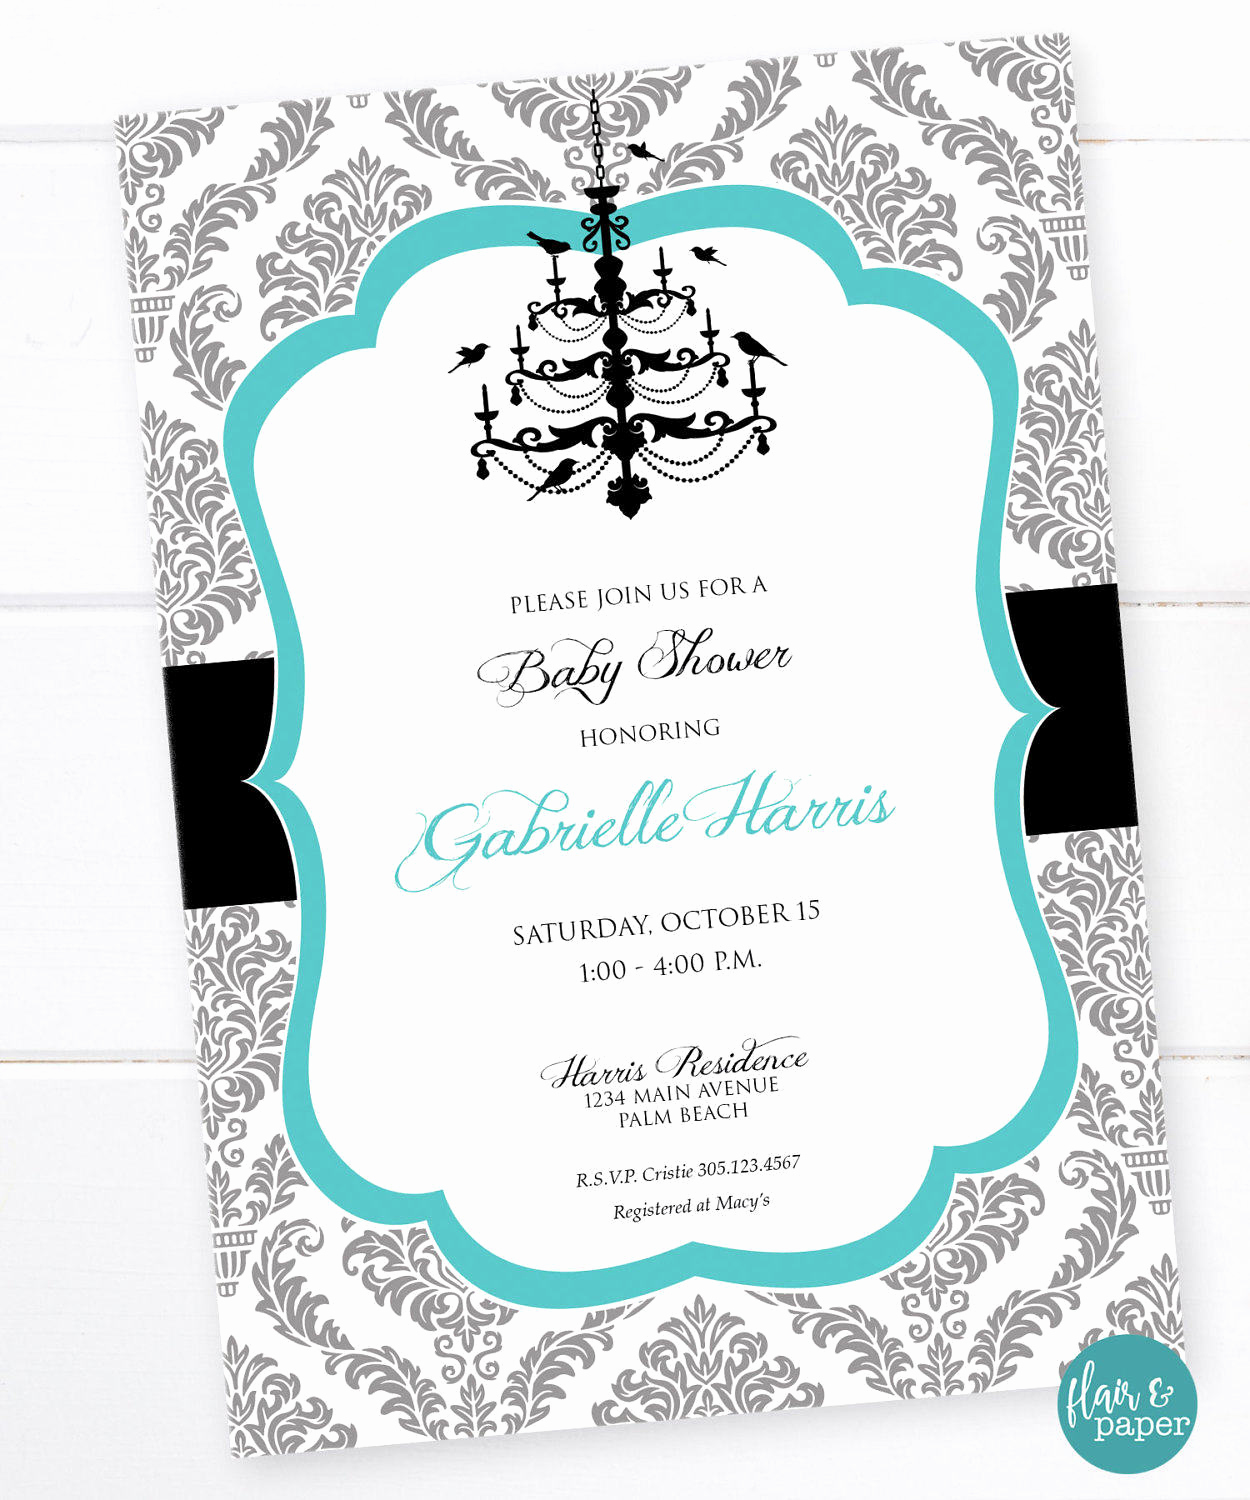 Tiffany Baby Shower Invitation Beautiful Breakfast at Tiffany S Baby Shower Invitation with